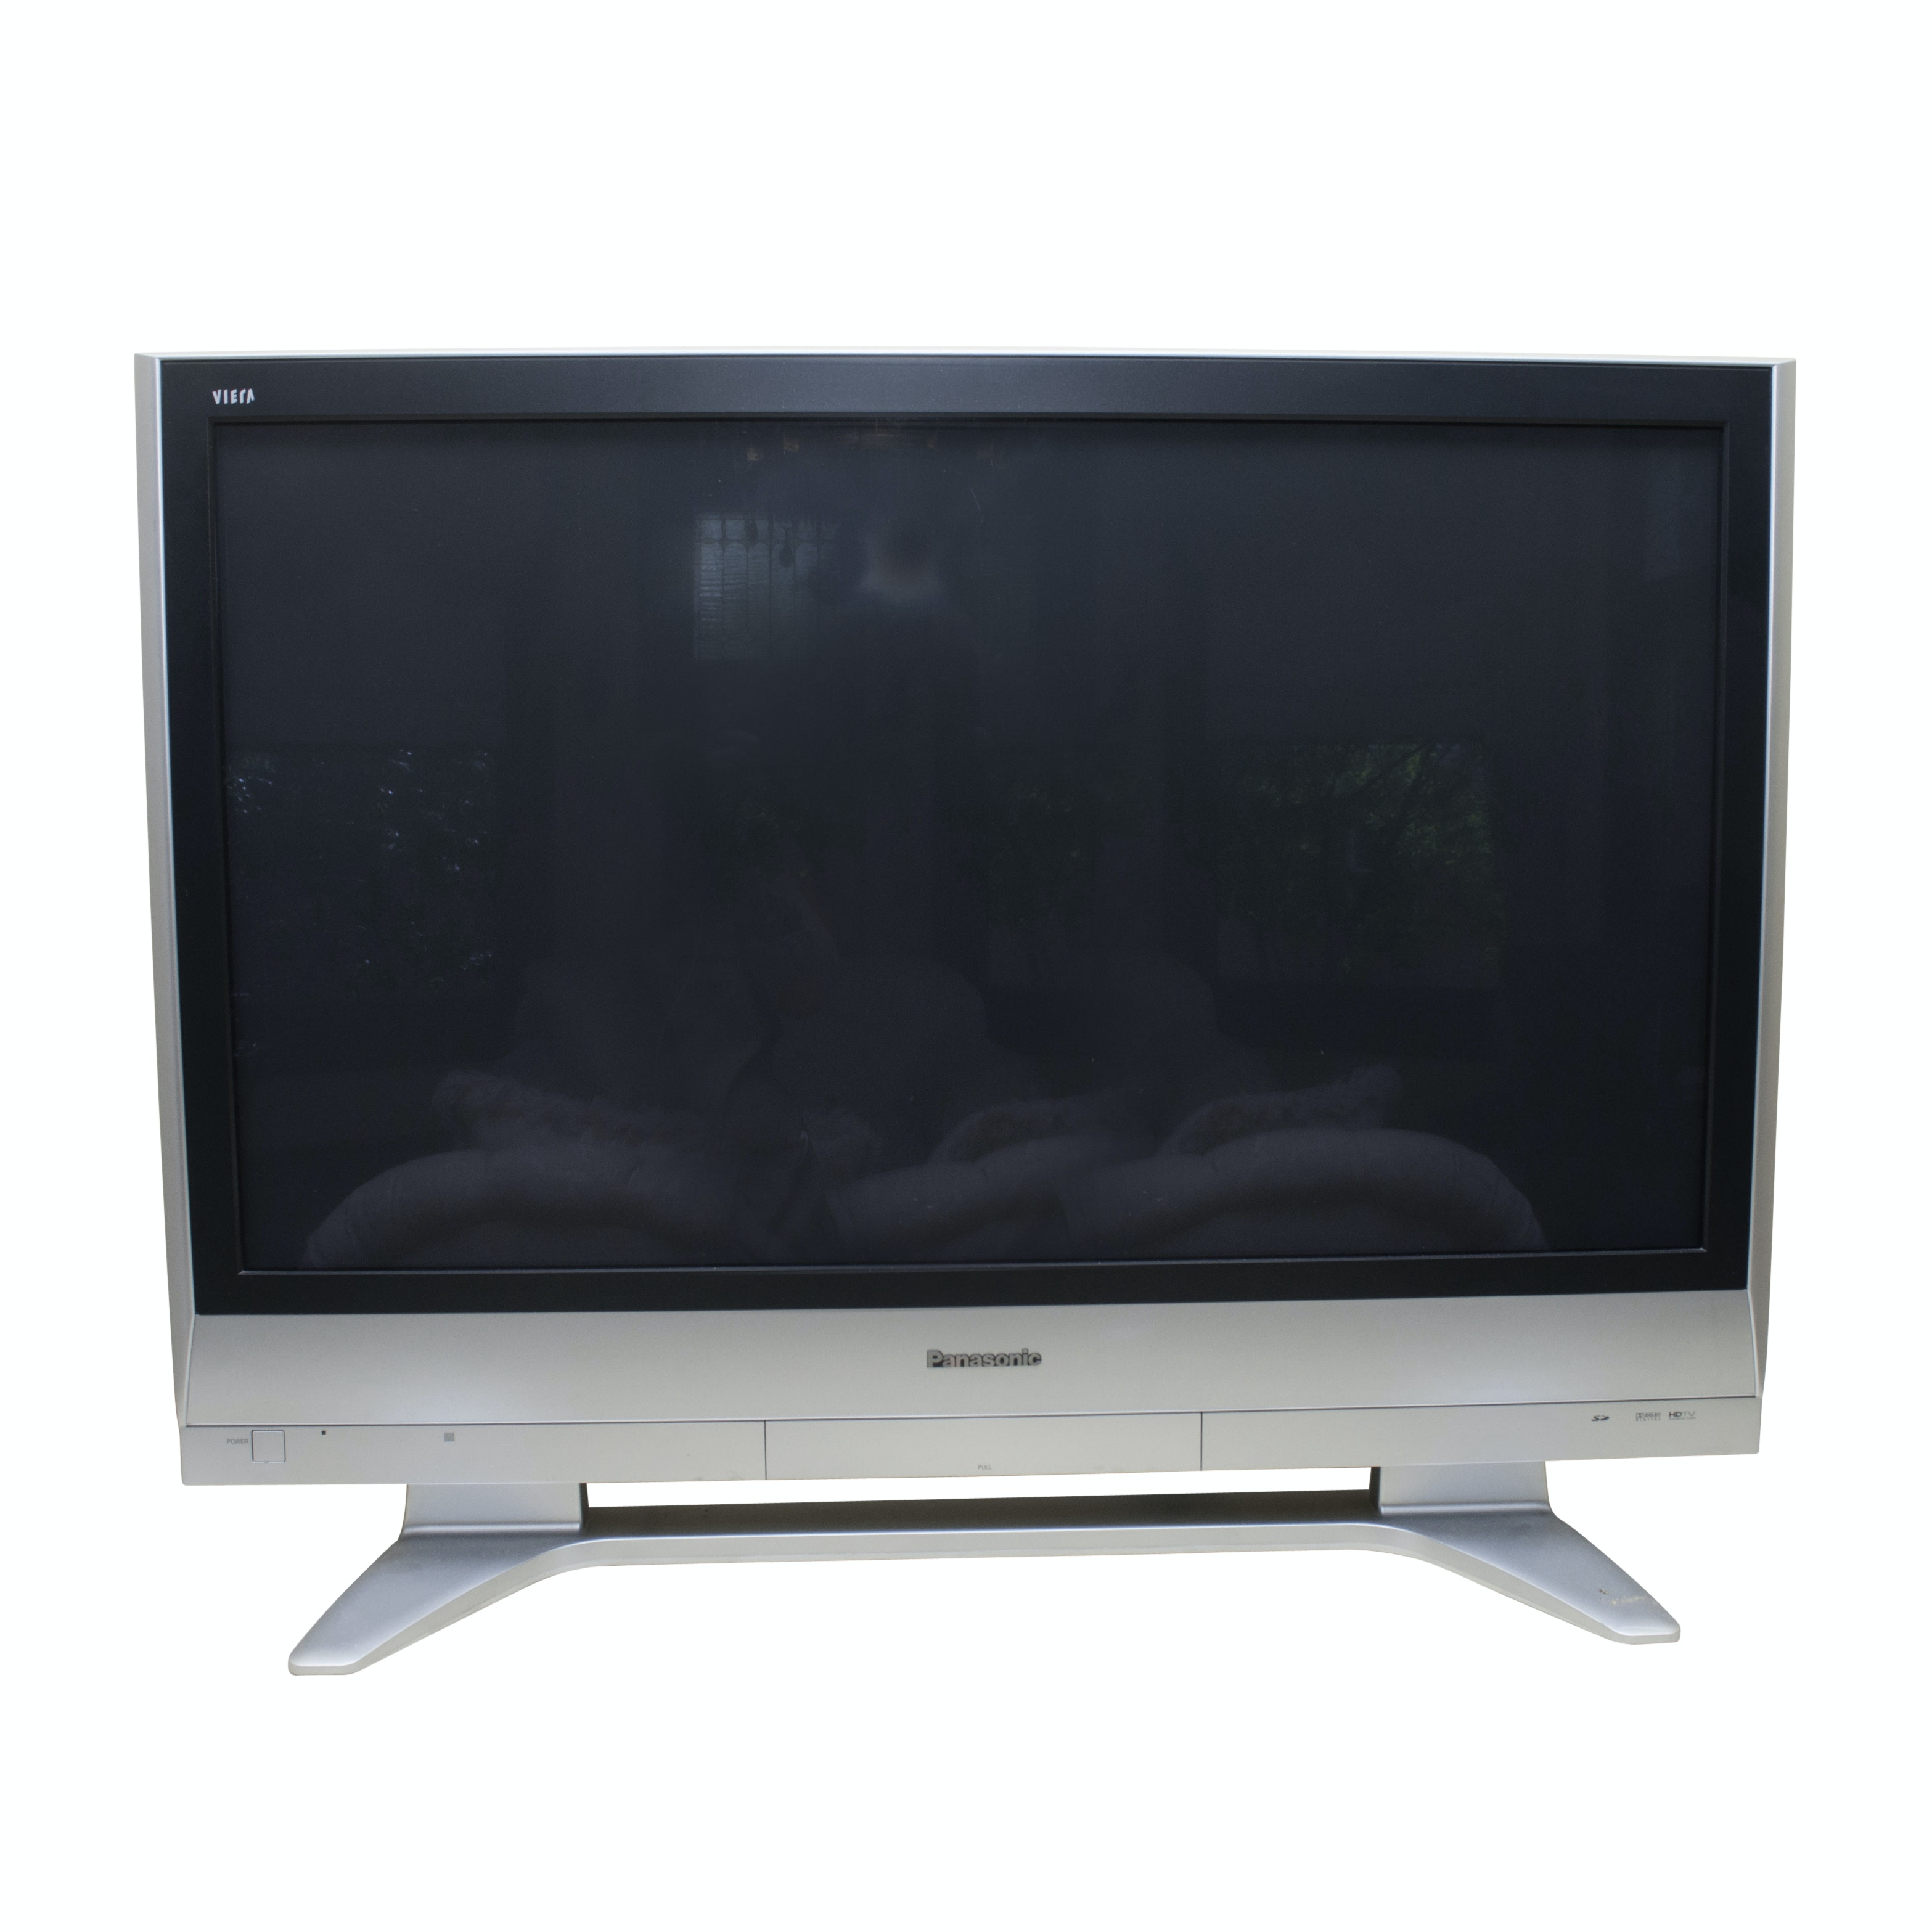 "Panasonic 42"" High Definition Plasma Television"